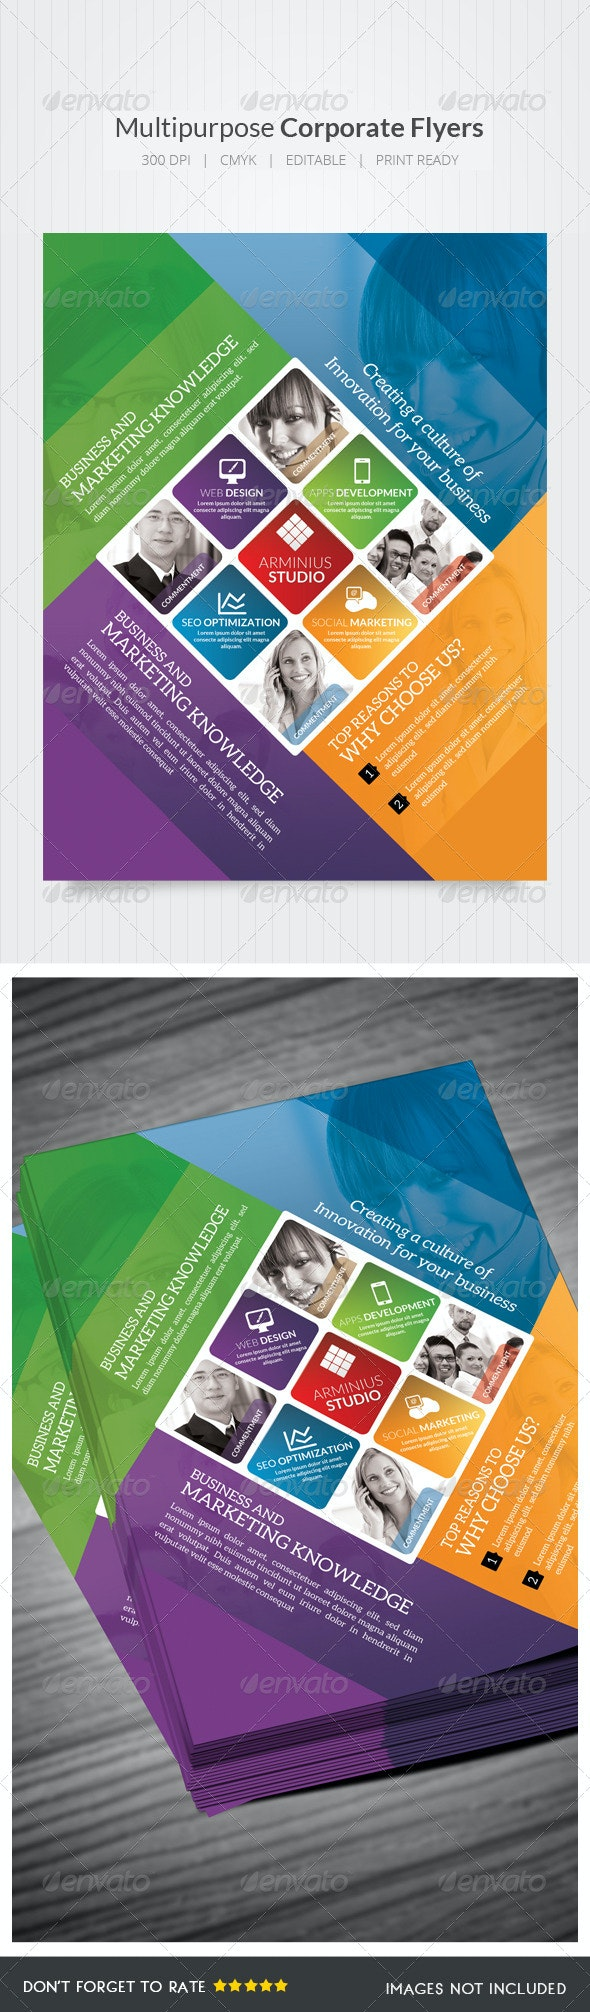 Design Agency Flyers - Corporate Flyers